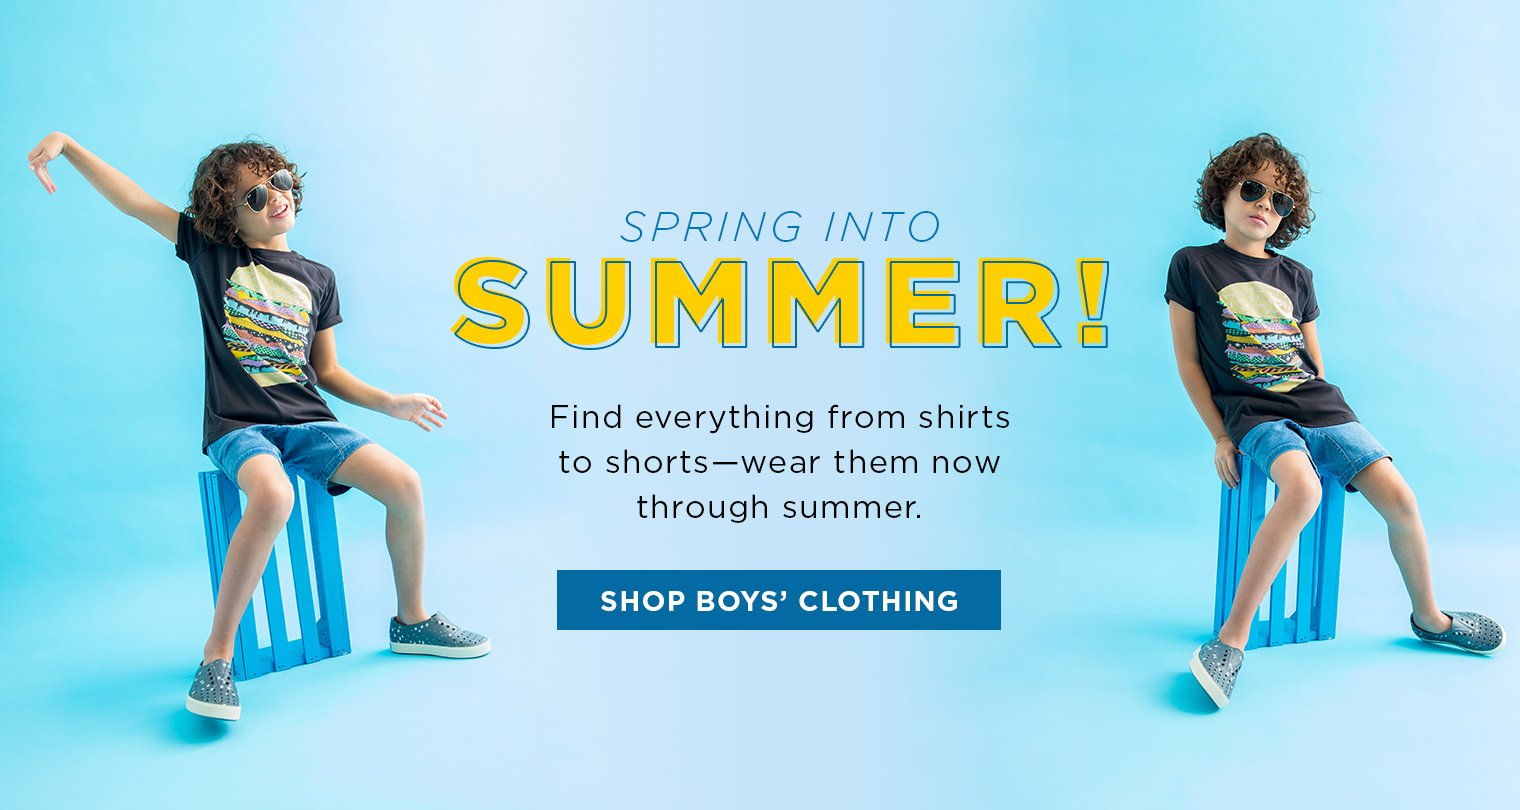 Image of Boy in summer clothing relaxing